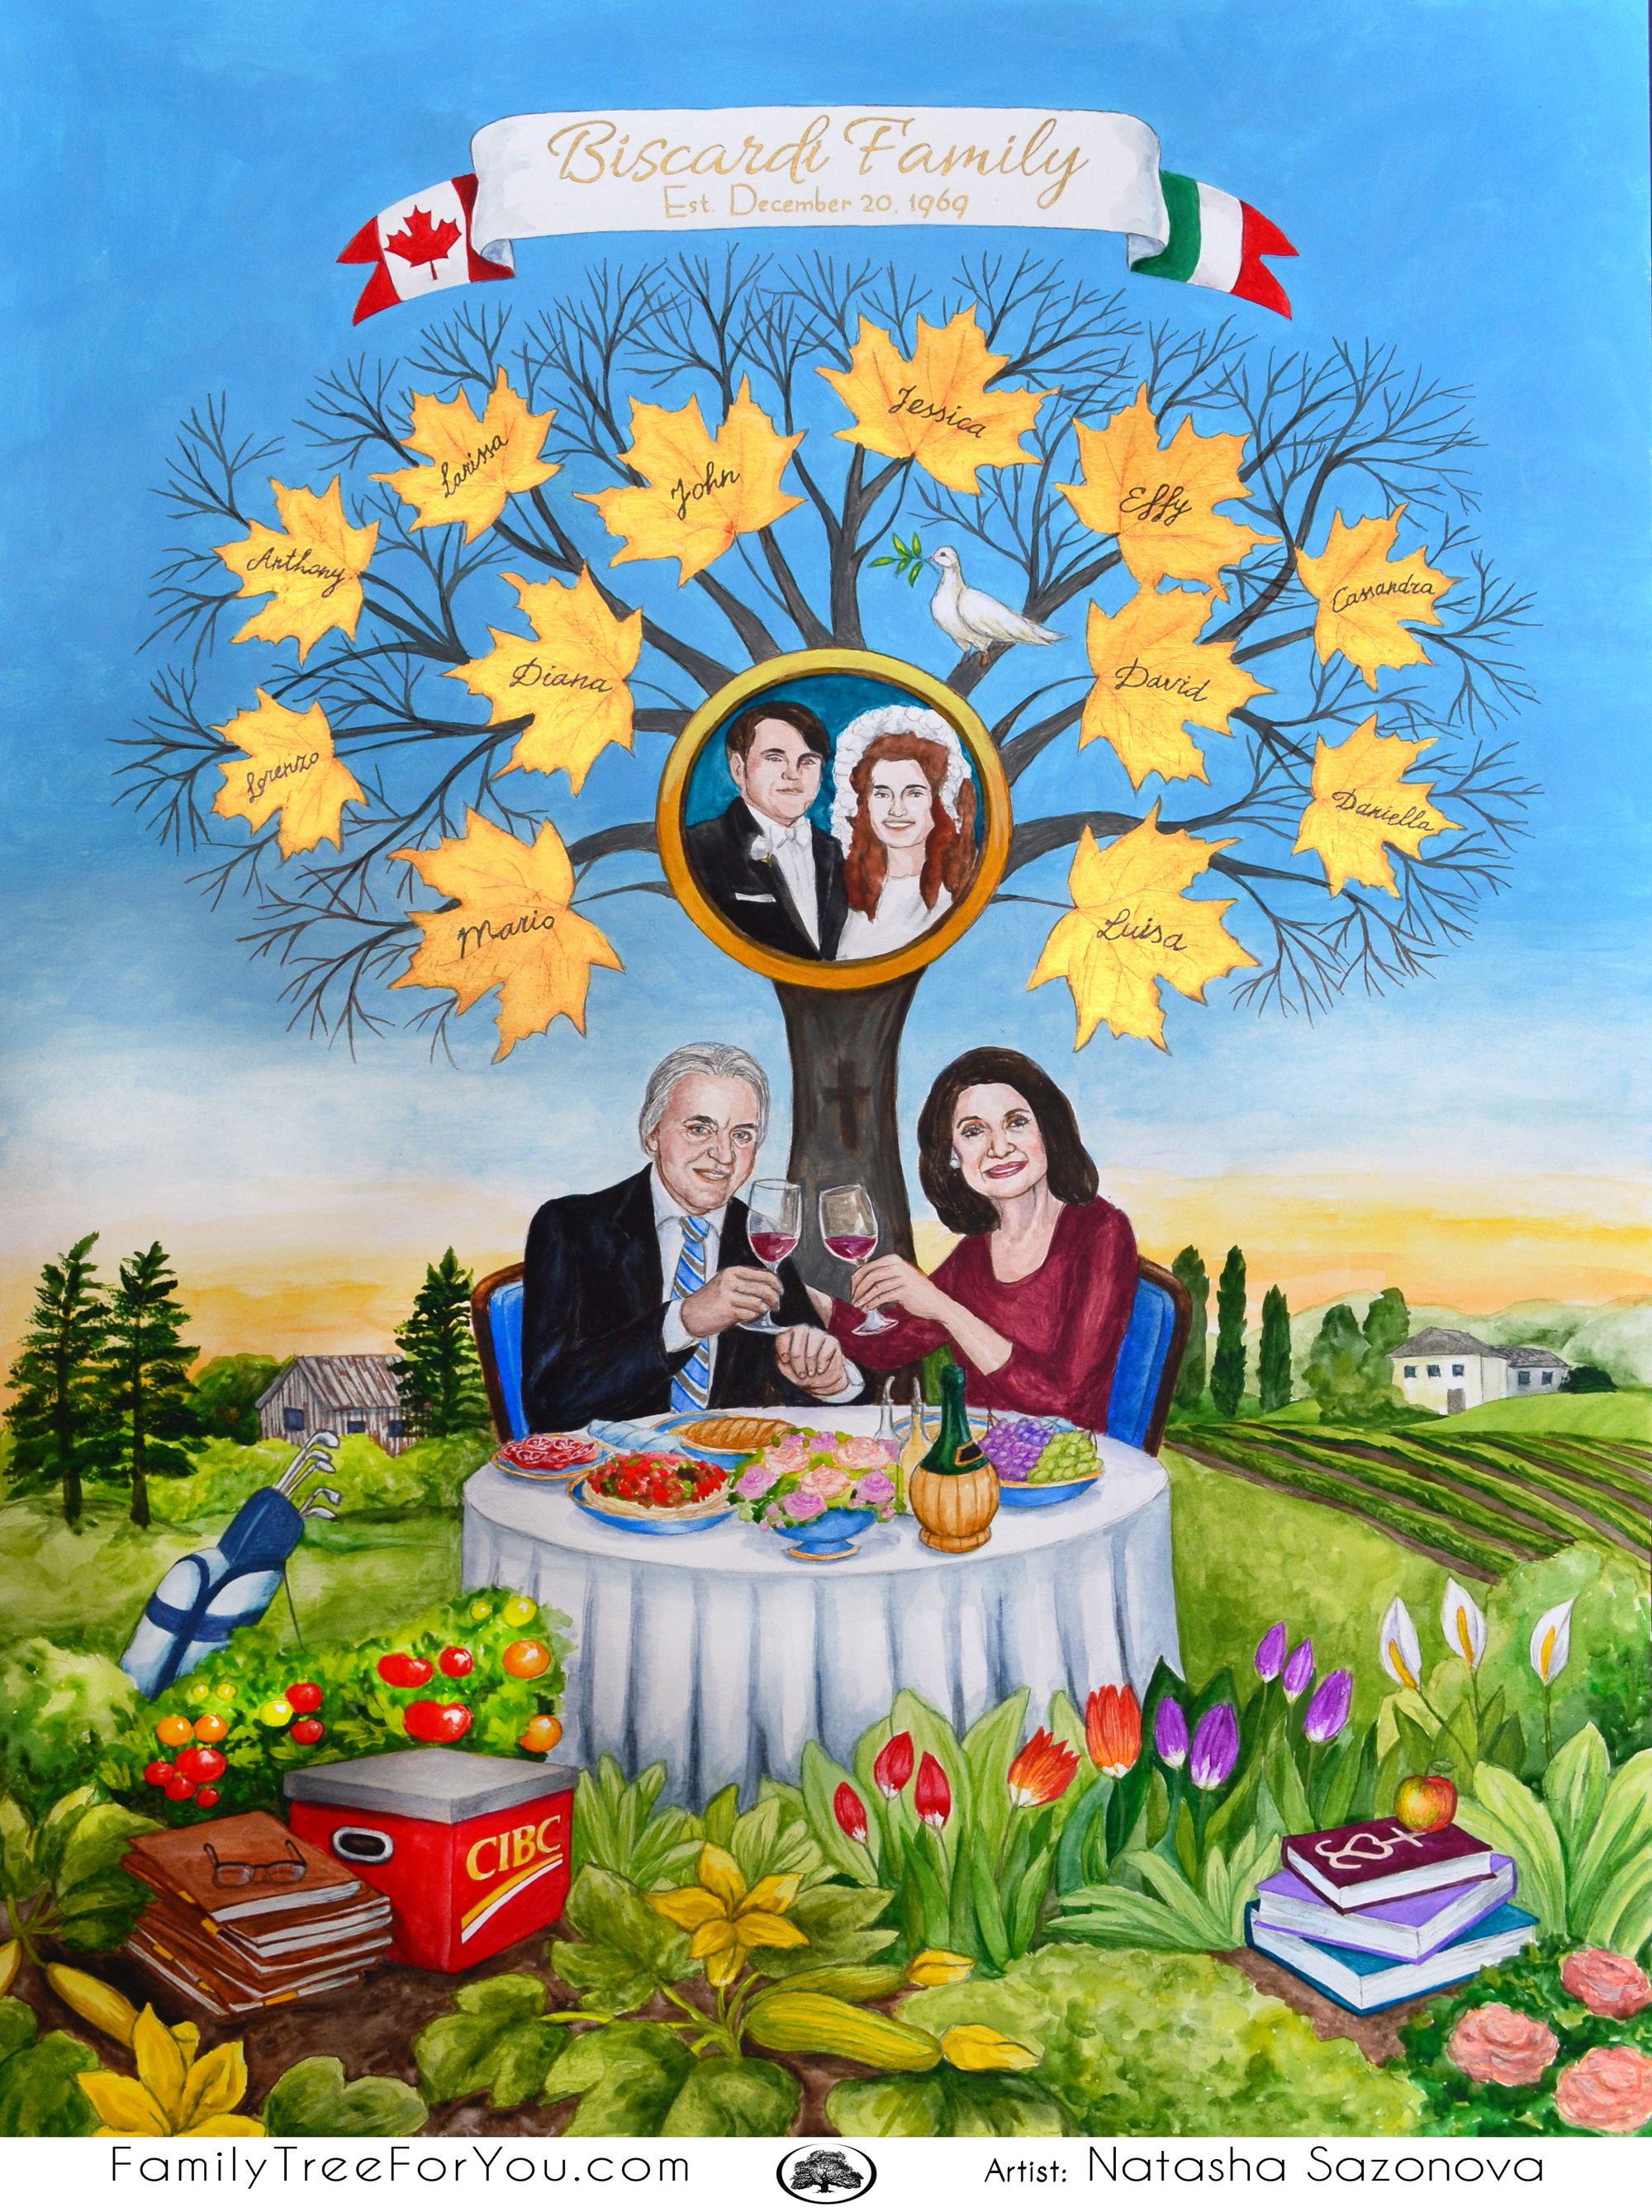 Family Tree Gift Gallery Examples Of Hand Painted Family Tree Illustrations In 2020 Golden Anniversary Gifts Family Tree Gift 50th Anniversary Gifts